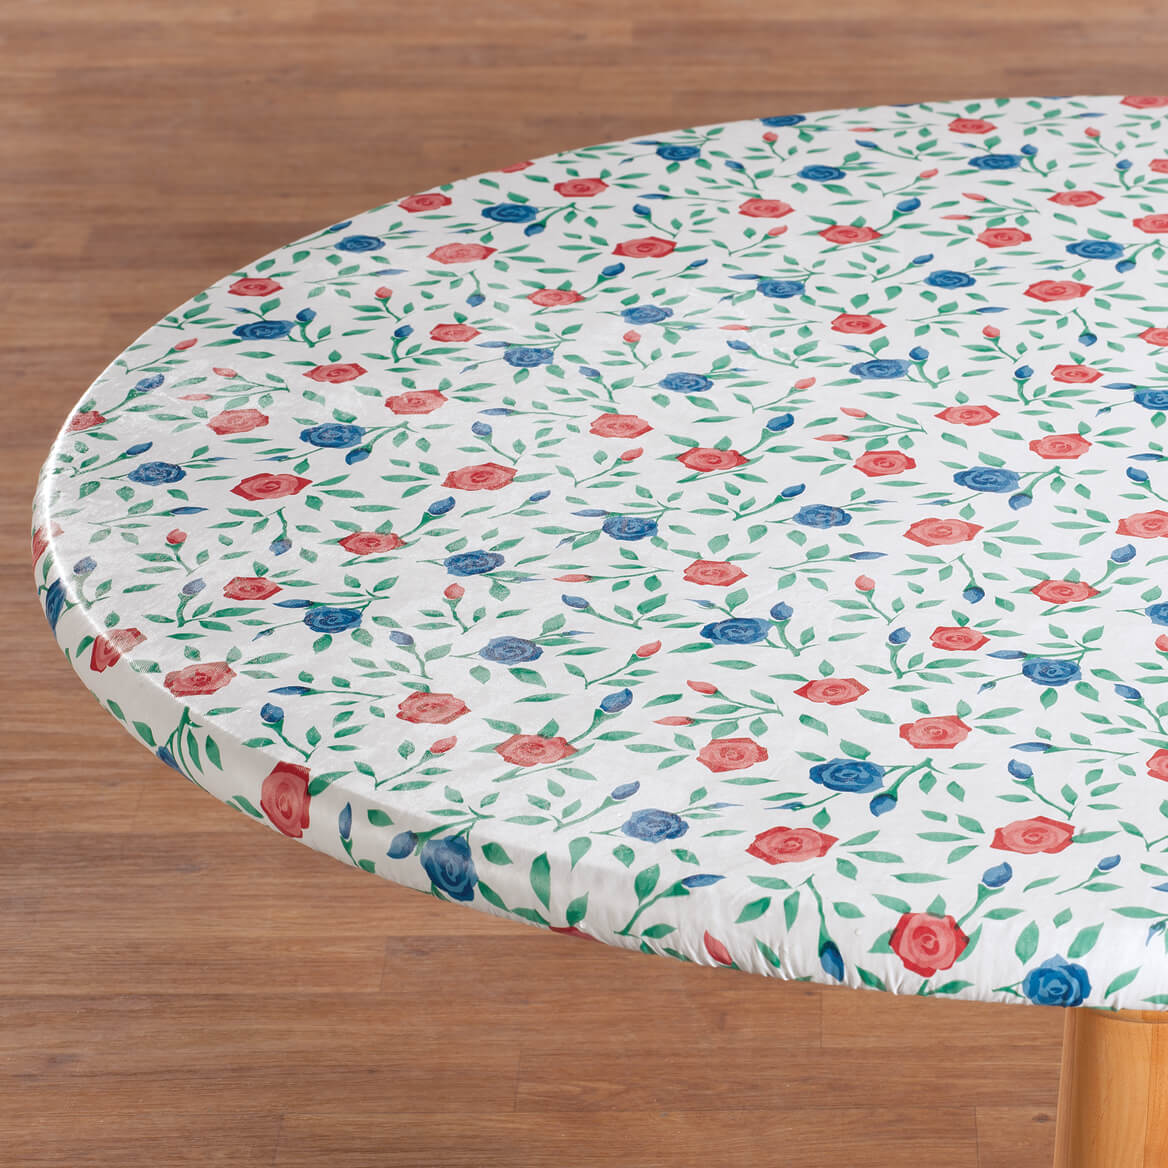 Original Elasticized Vinyl Table Cover Miles Kimball